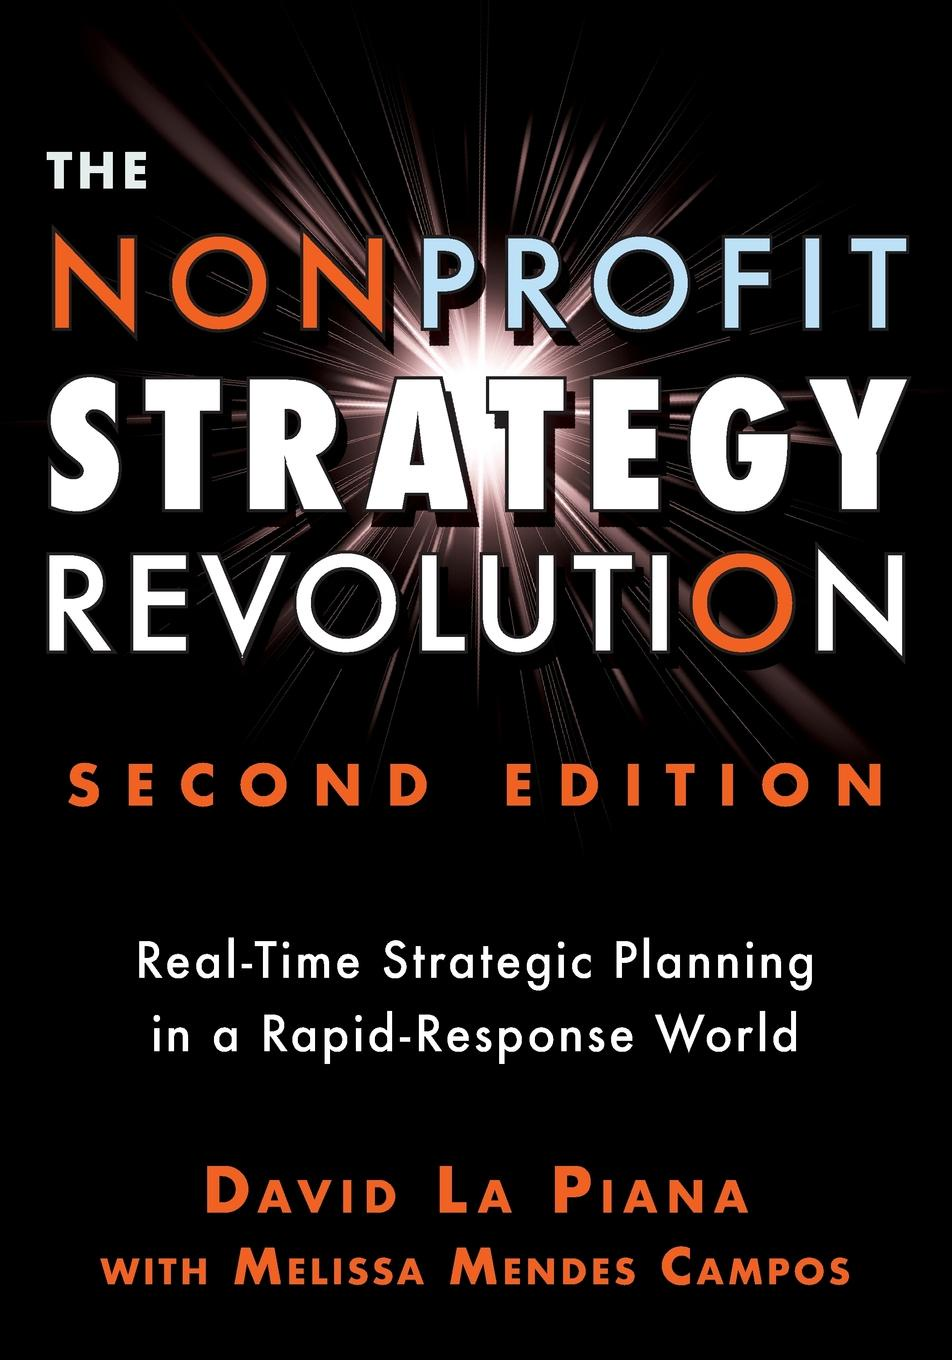 цены David La Piana, Melissa Mendes Campos The Nonprofit Strategy Revolution. Real-Time Strategic Planning in a Rapid-Response World